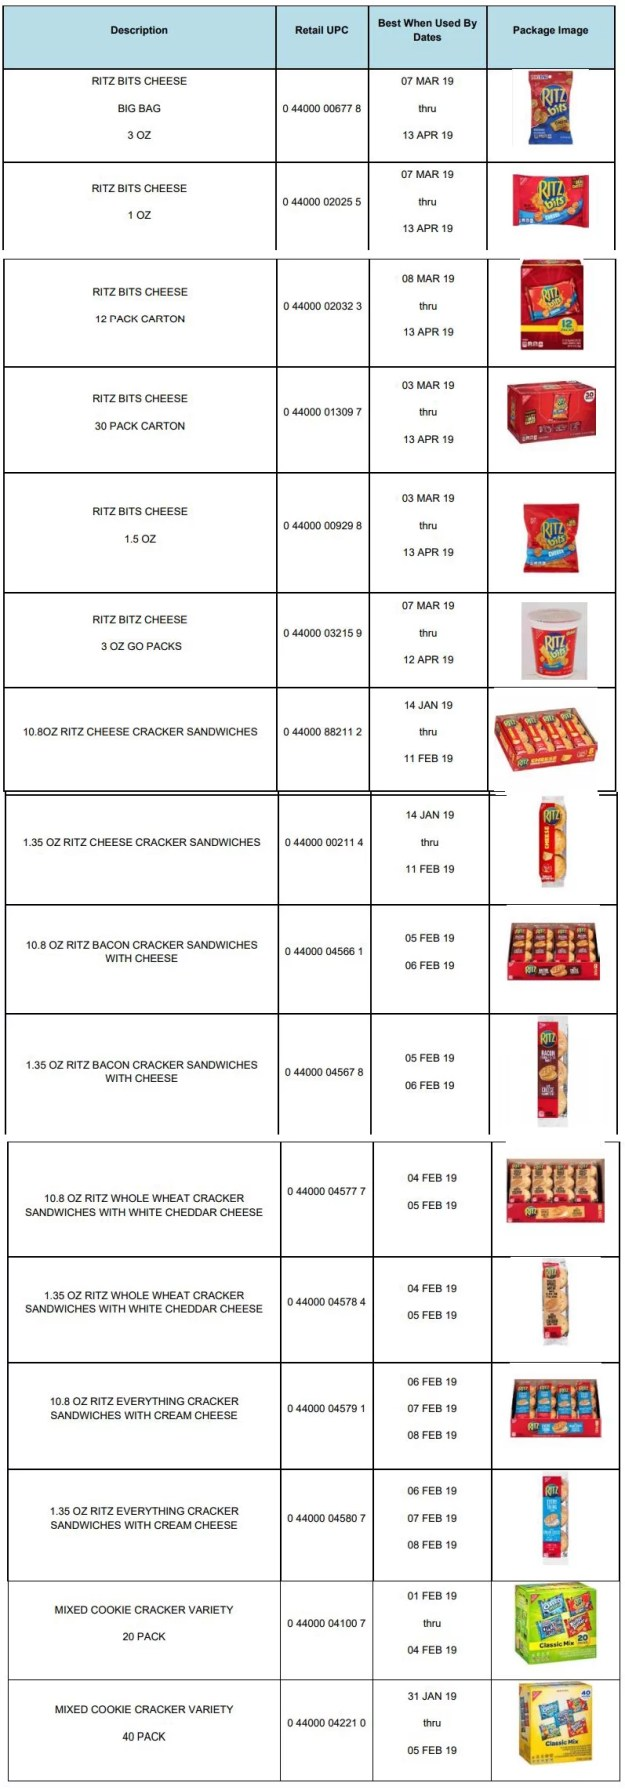 Ritz Products Recalled